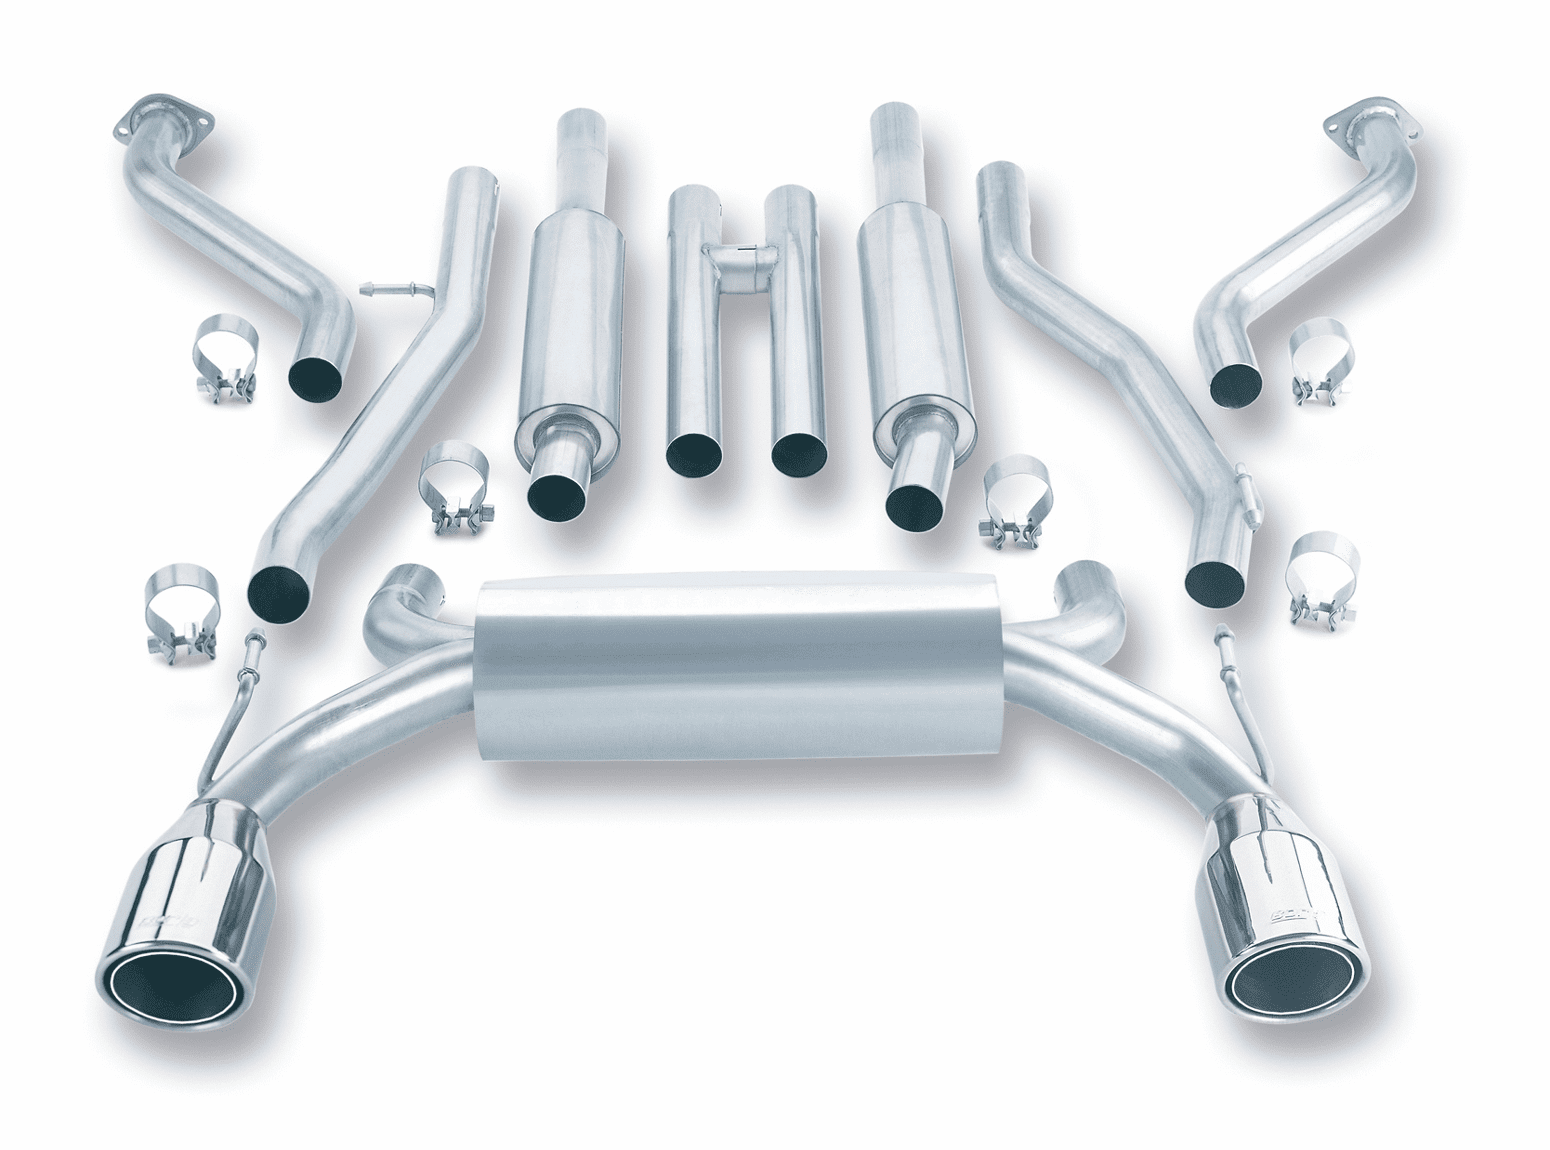 Borla True Dual Cat-Back Exhaust System Part # 140045 for the 2003 - 2007 Nissan 350Z